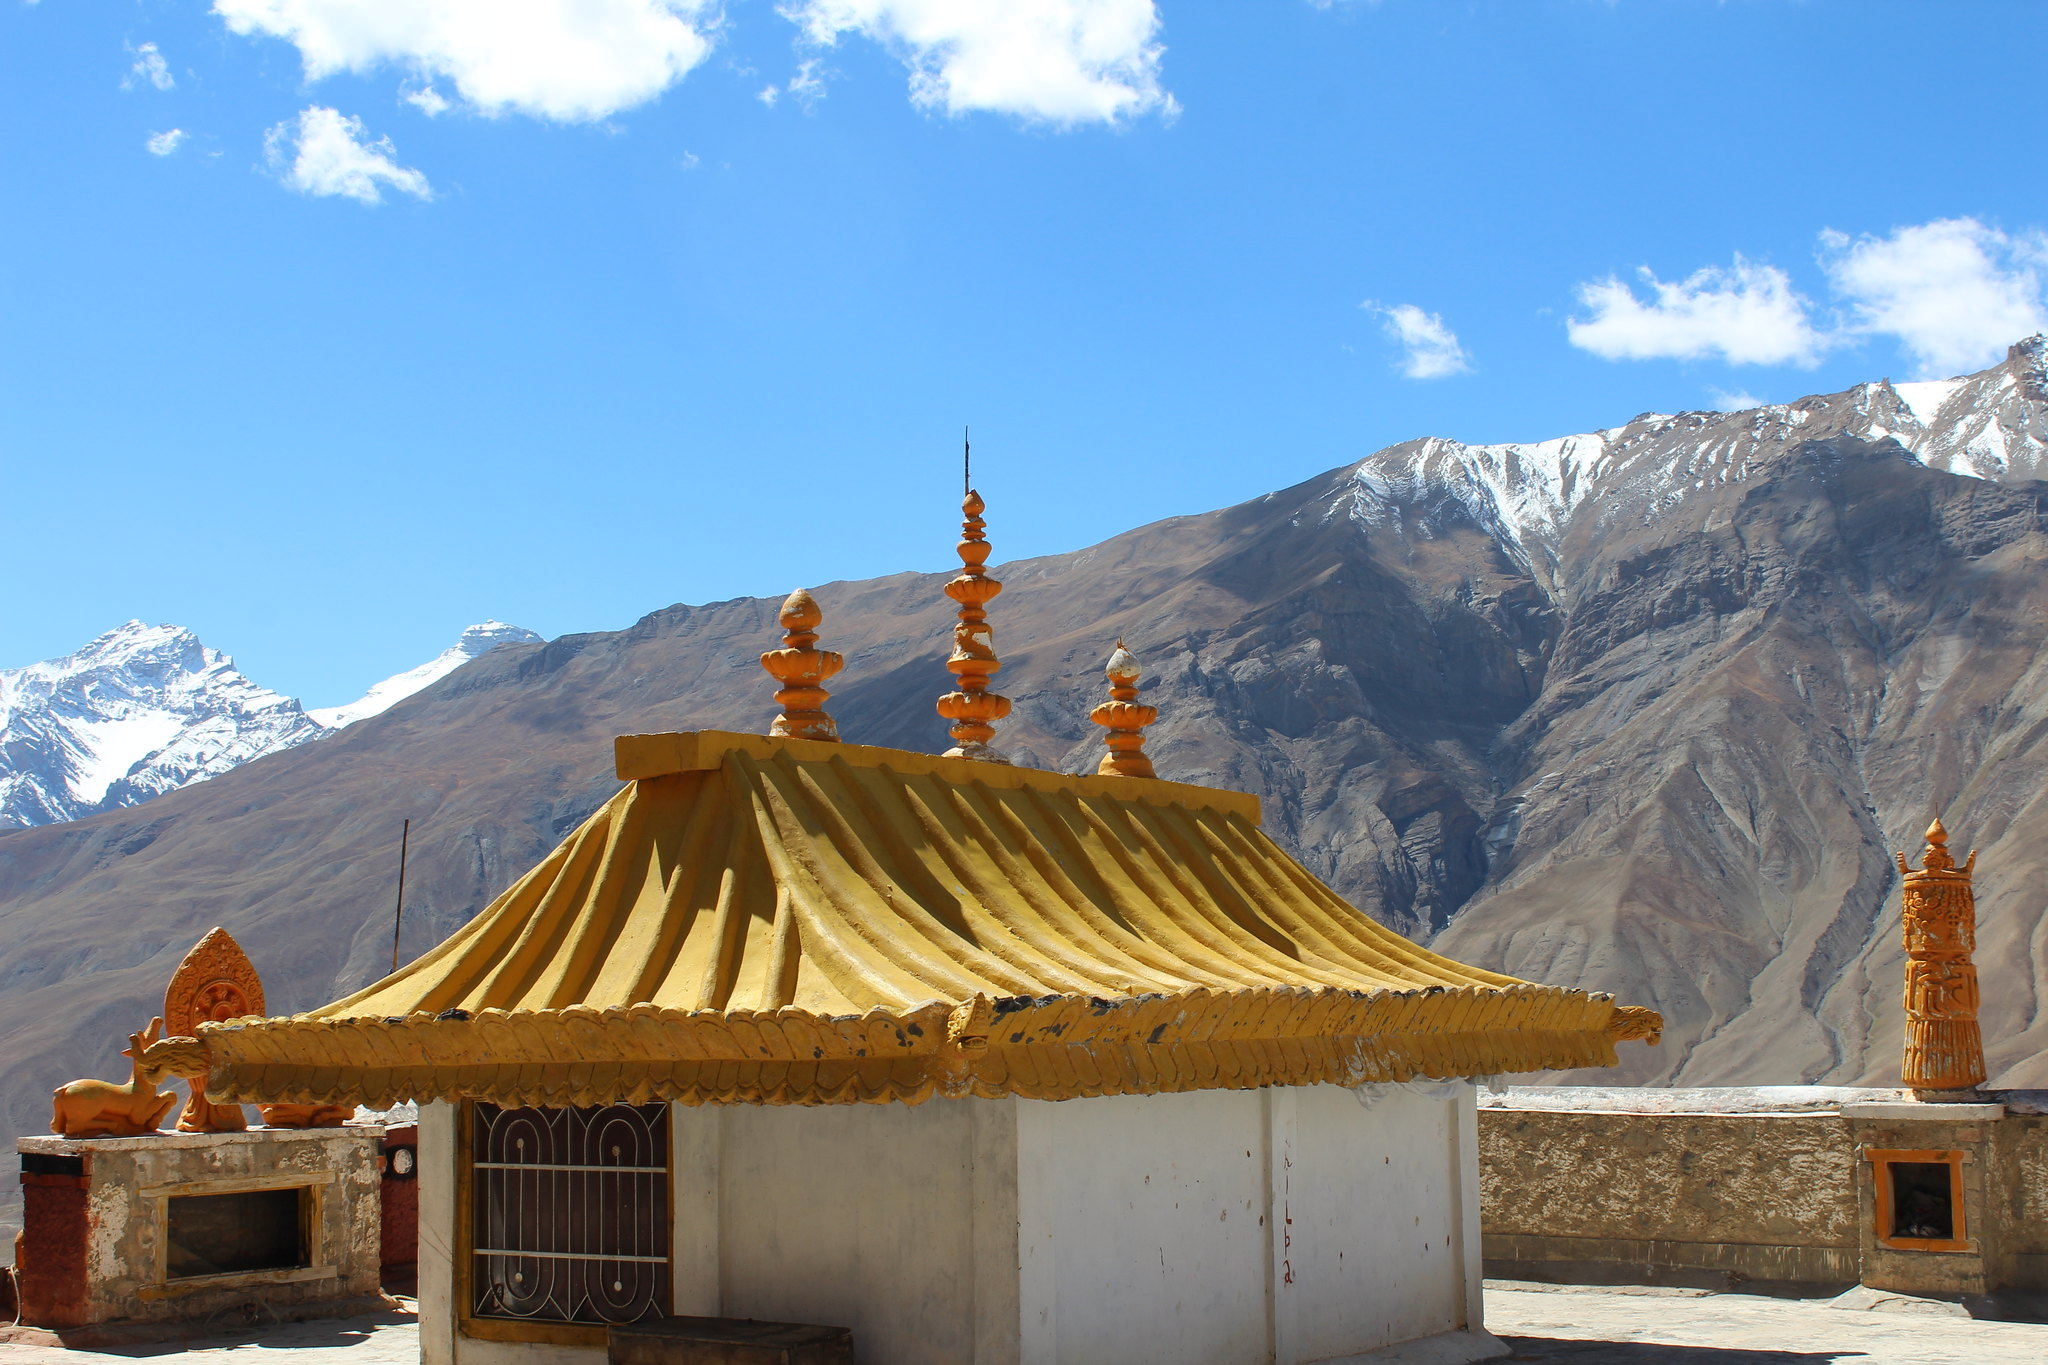 Top of the Kye monastery